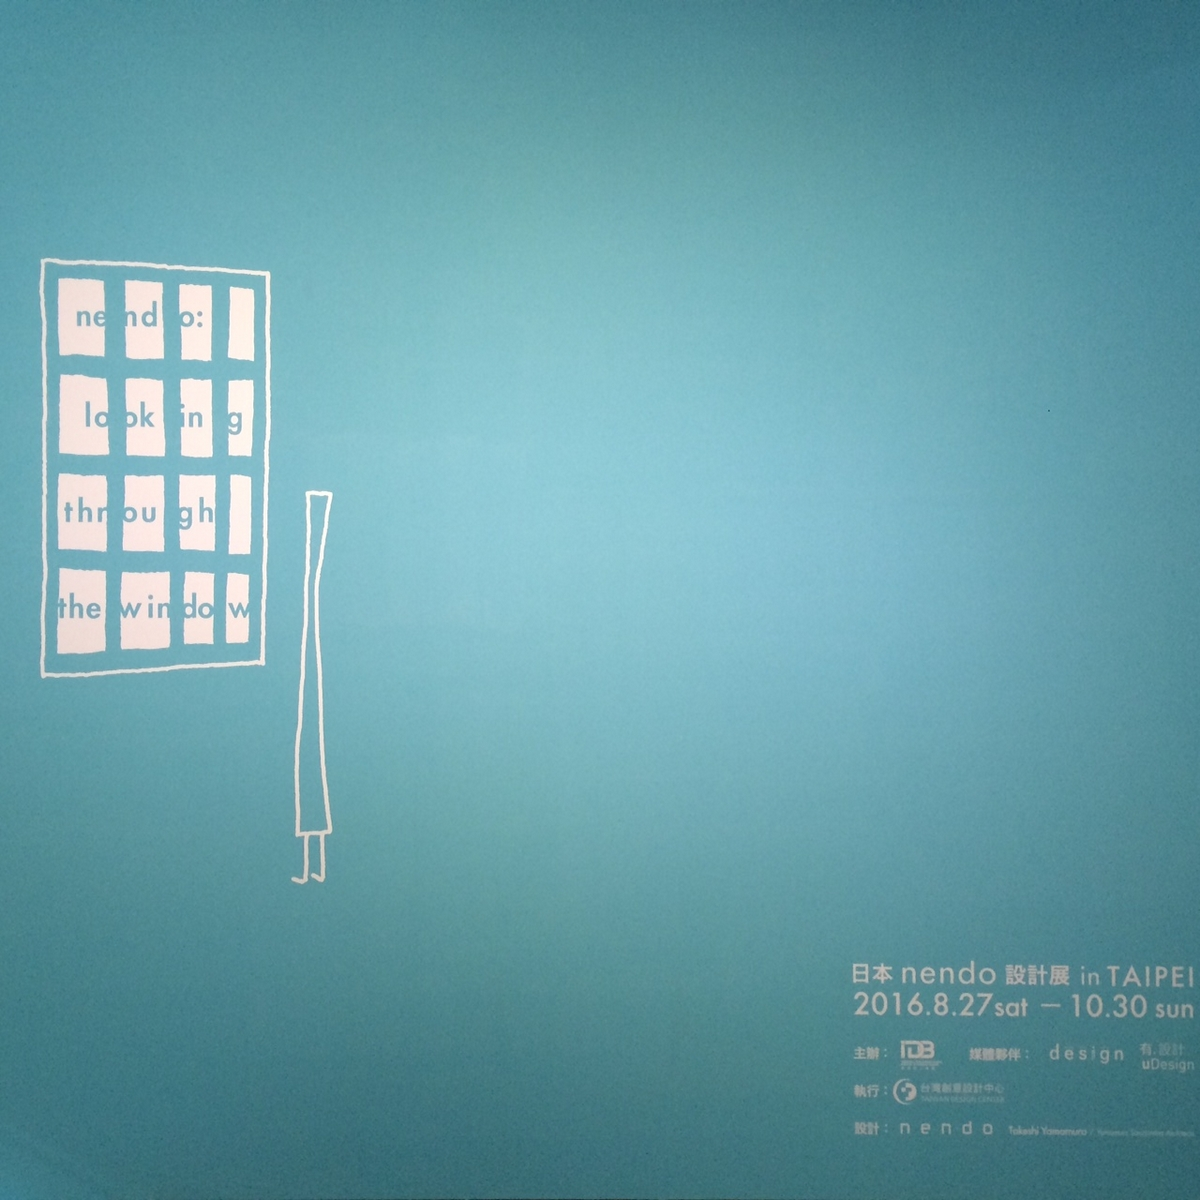 日本Nendo設計展in Taipei/ Nendo: Looking Through the Window